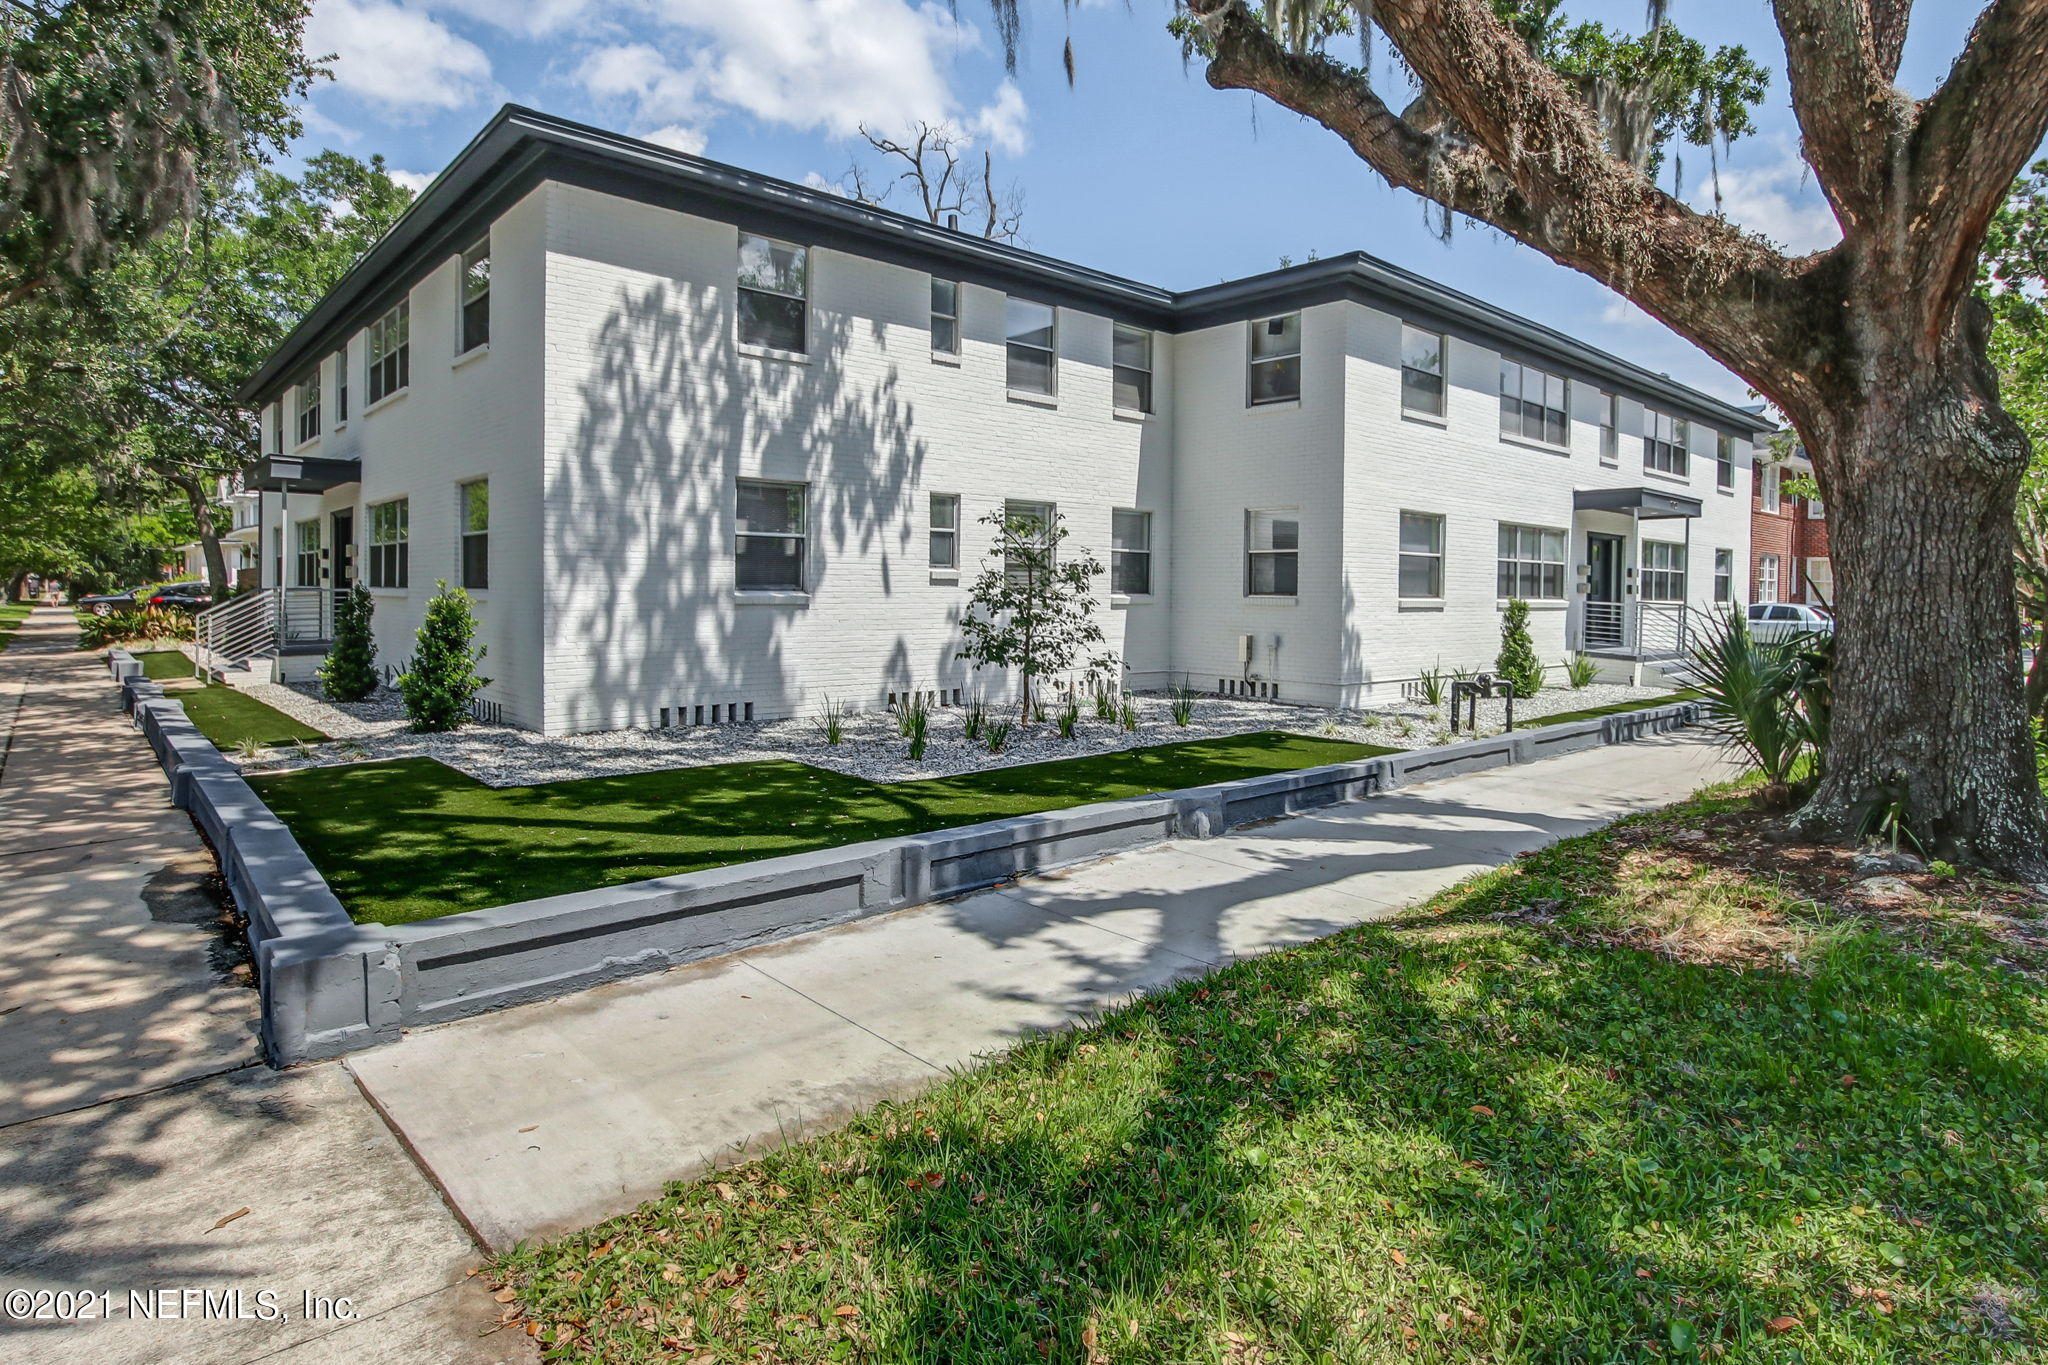 2160 RIVERSIDE, JACKSONVILLE, FLORIDA 32204, 16 Bedrooms Bedrooms, ,8 BathroomsBathrooms,Investment / MultiFamily,For sale,RIVERSIDE,1092091